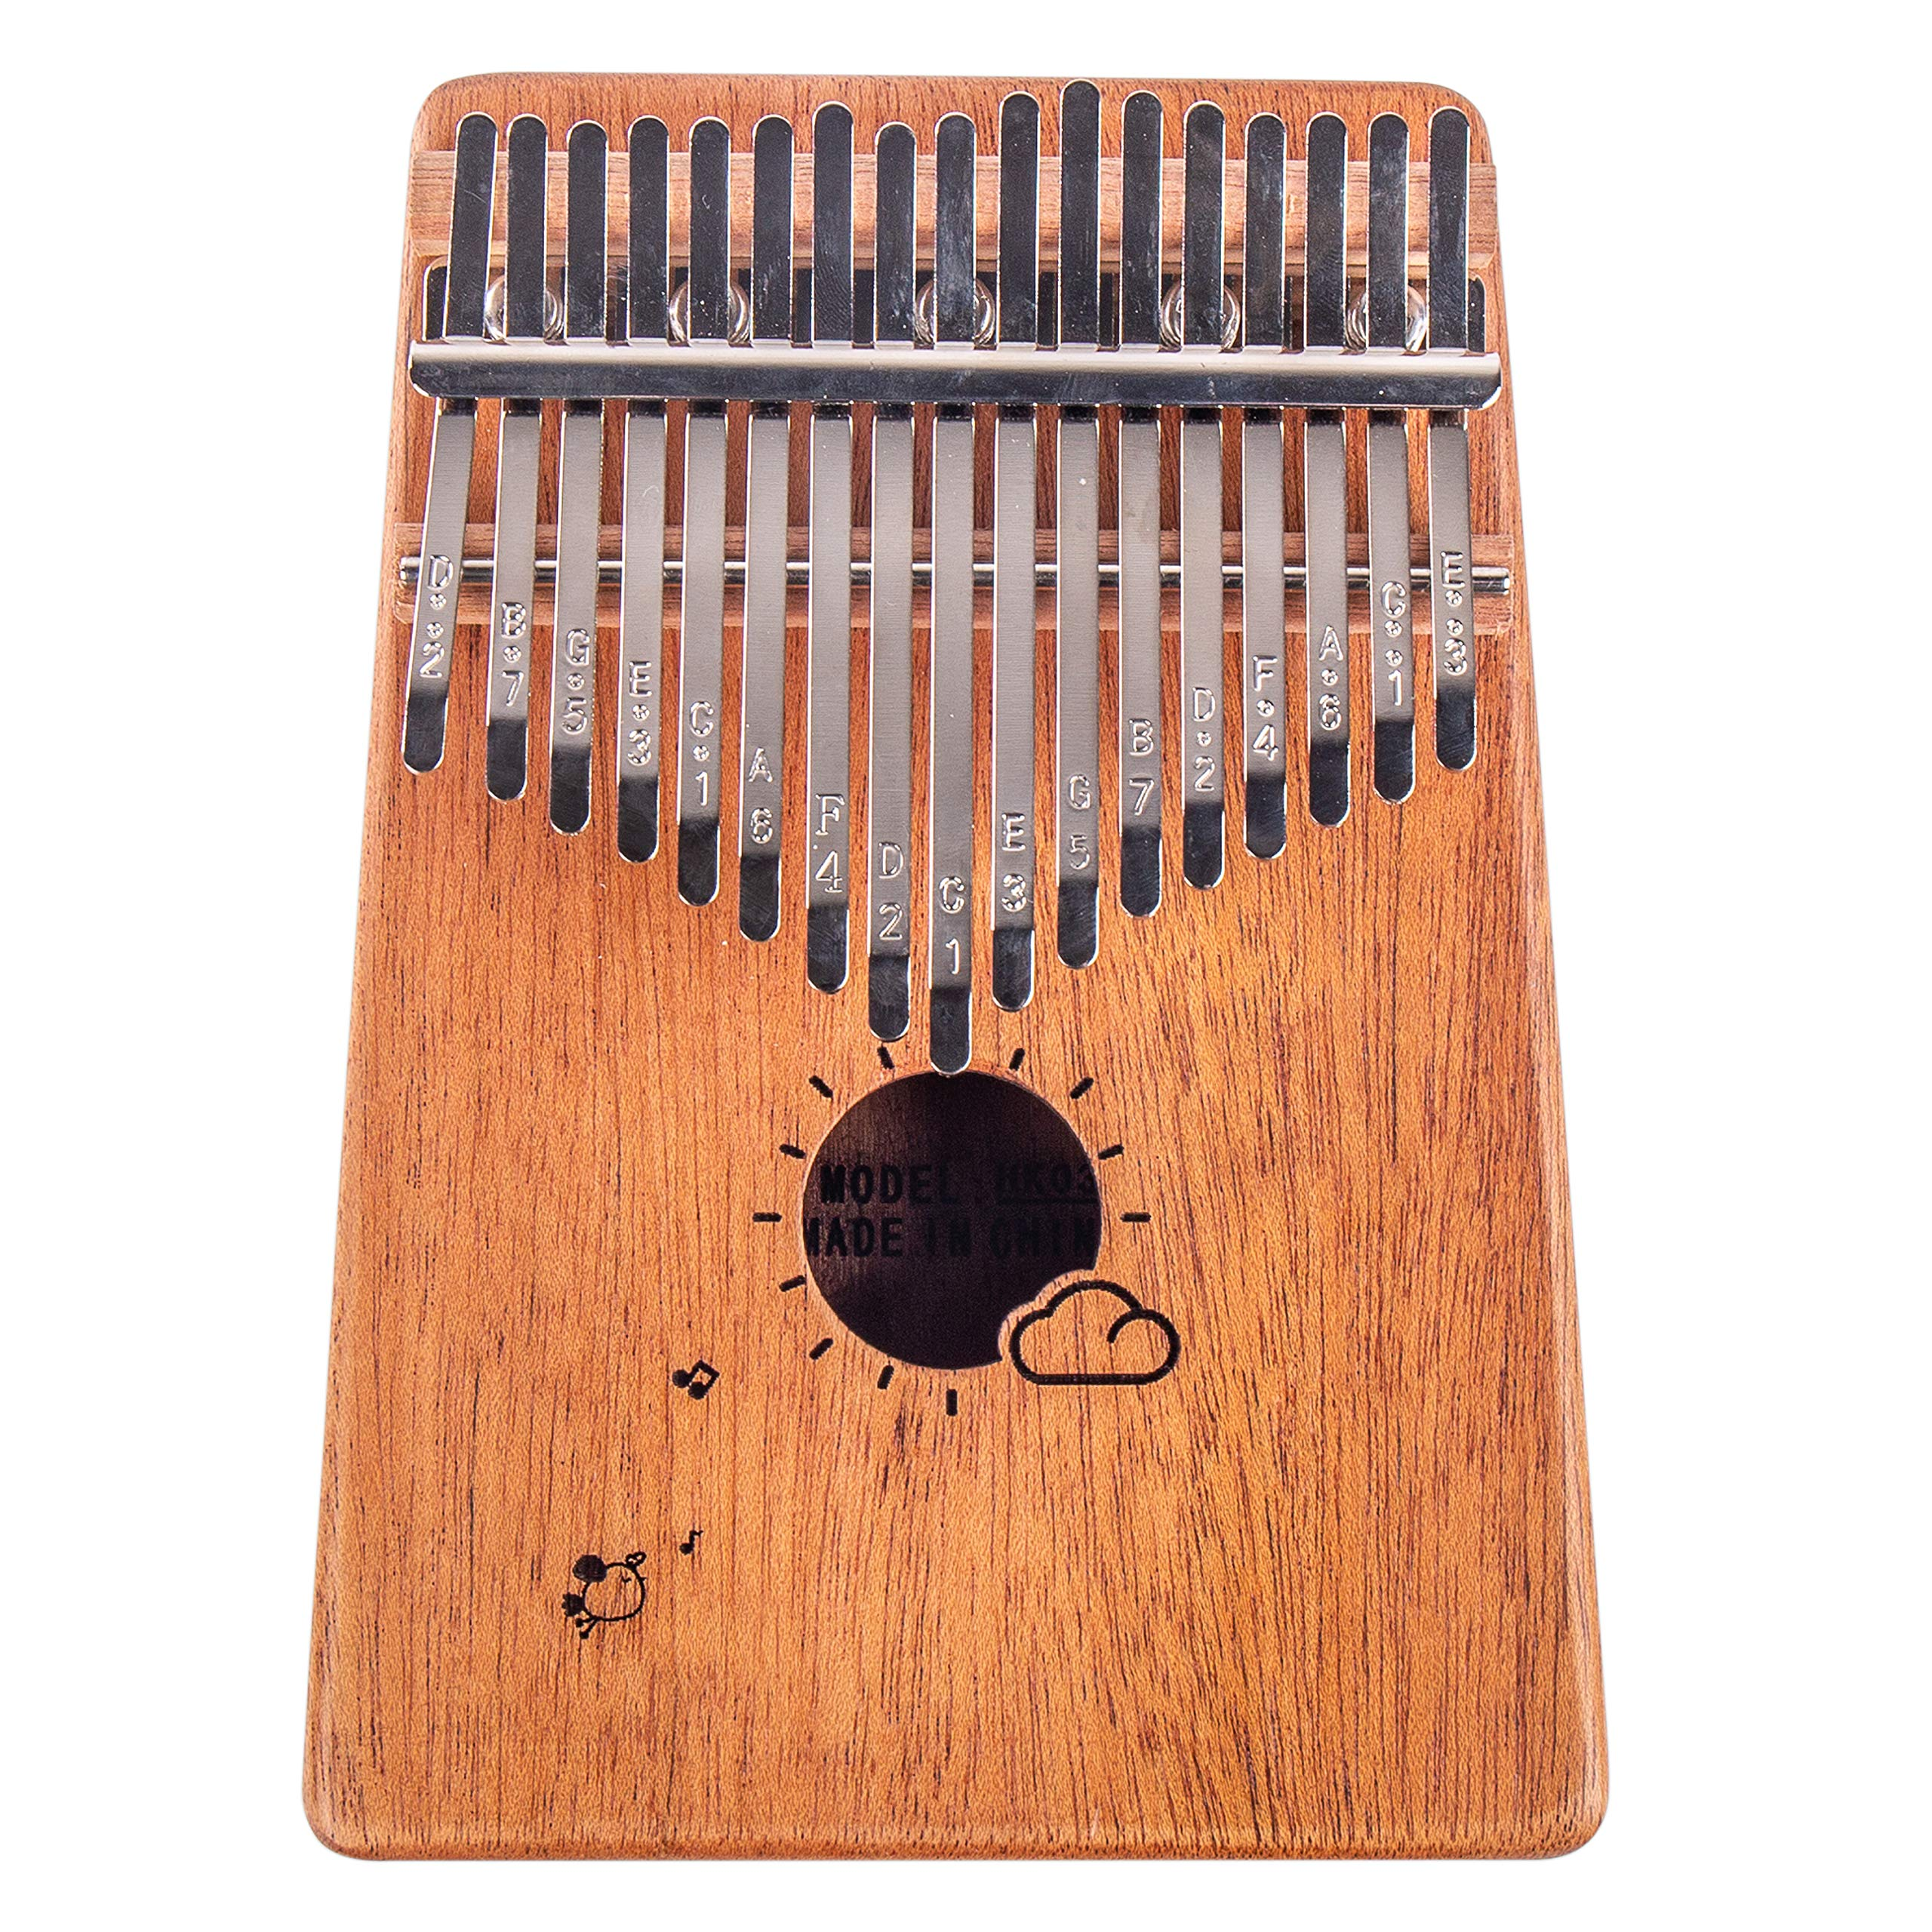 Kalimba 17 Keys Thumb Finger Piano - Mbira - Solid Mahogany and Portable with Carrying Bag and Instructions by GSM Brands